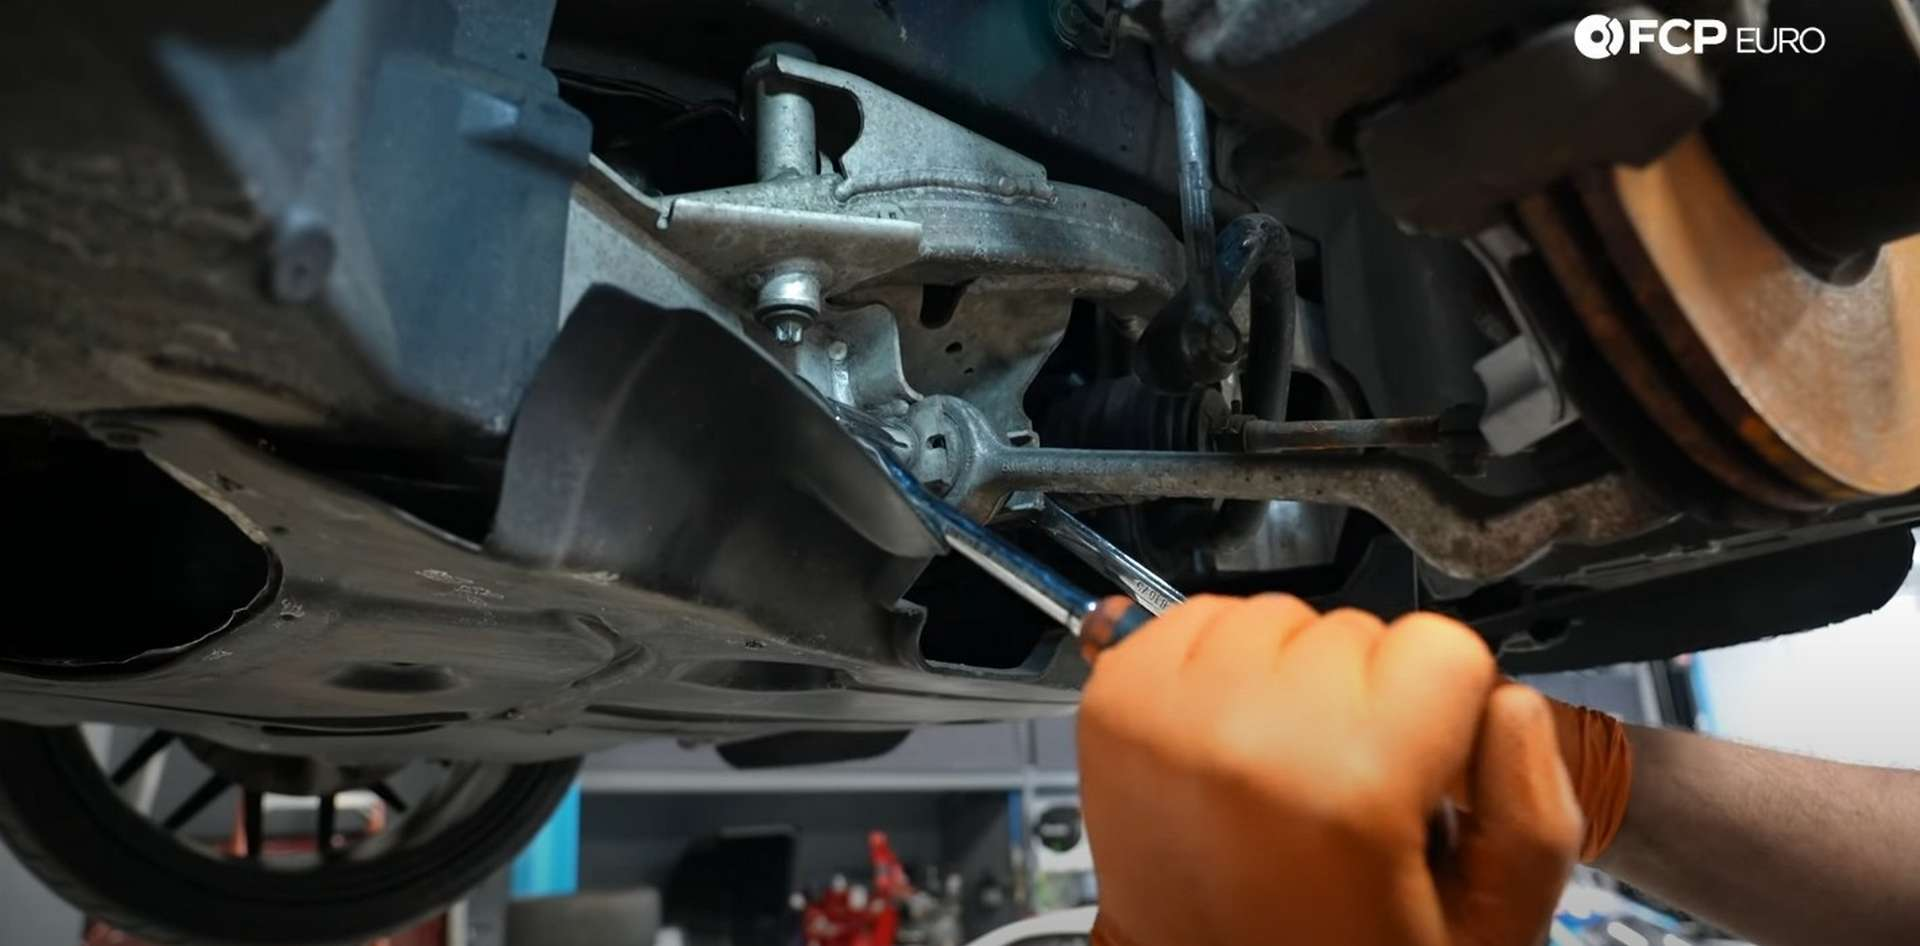 DIY BMW E9X Front Control Arm Upgrade removing the control arm's inner mounting bolt